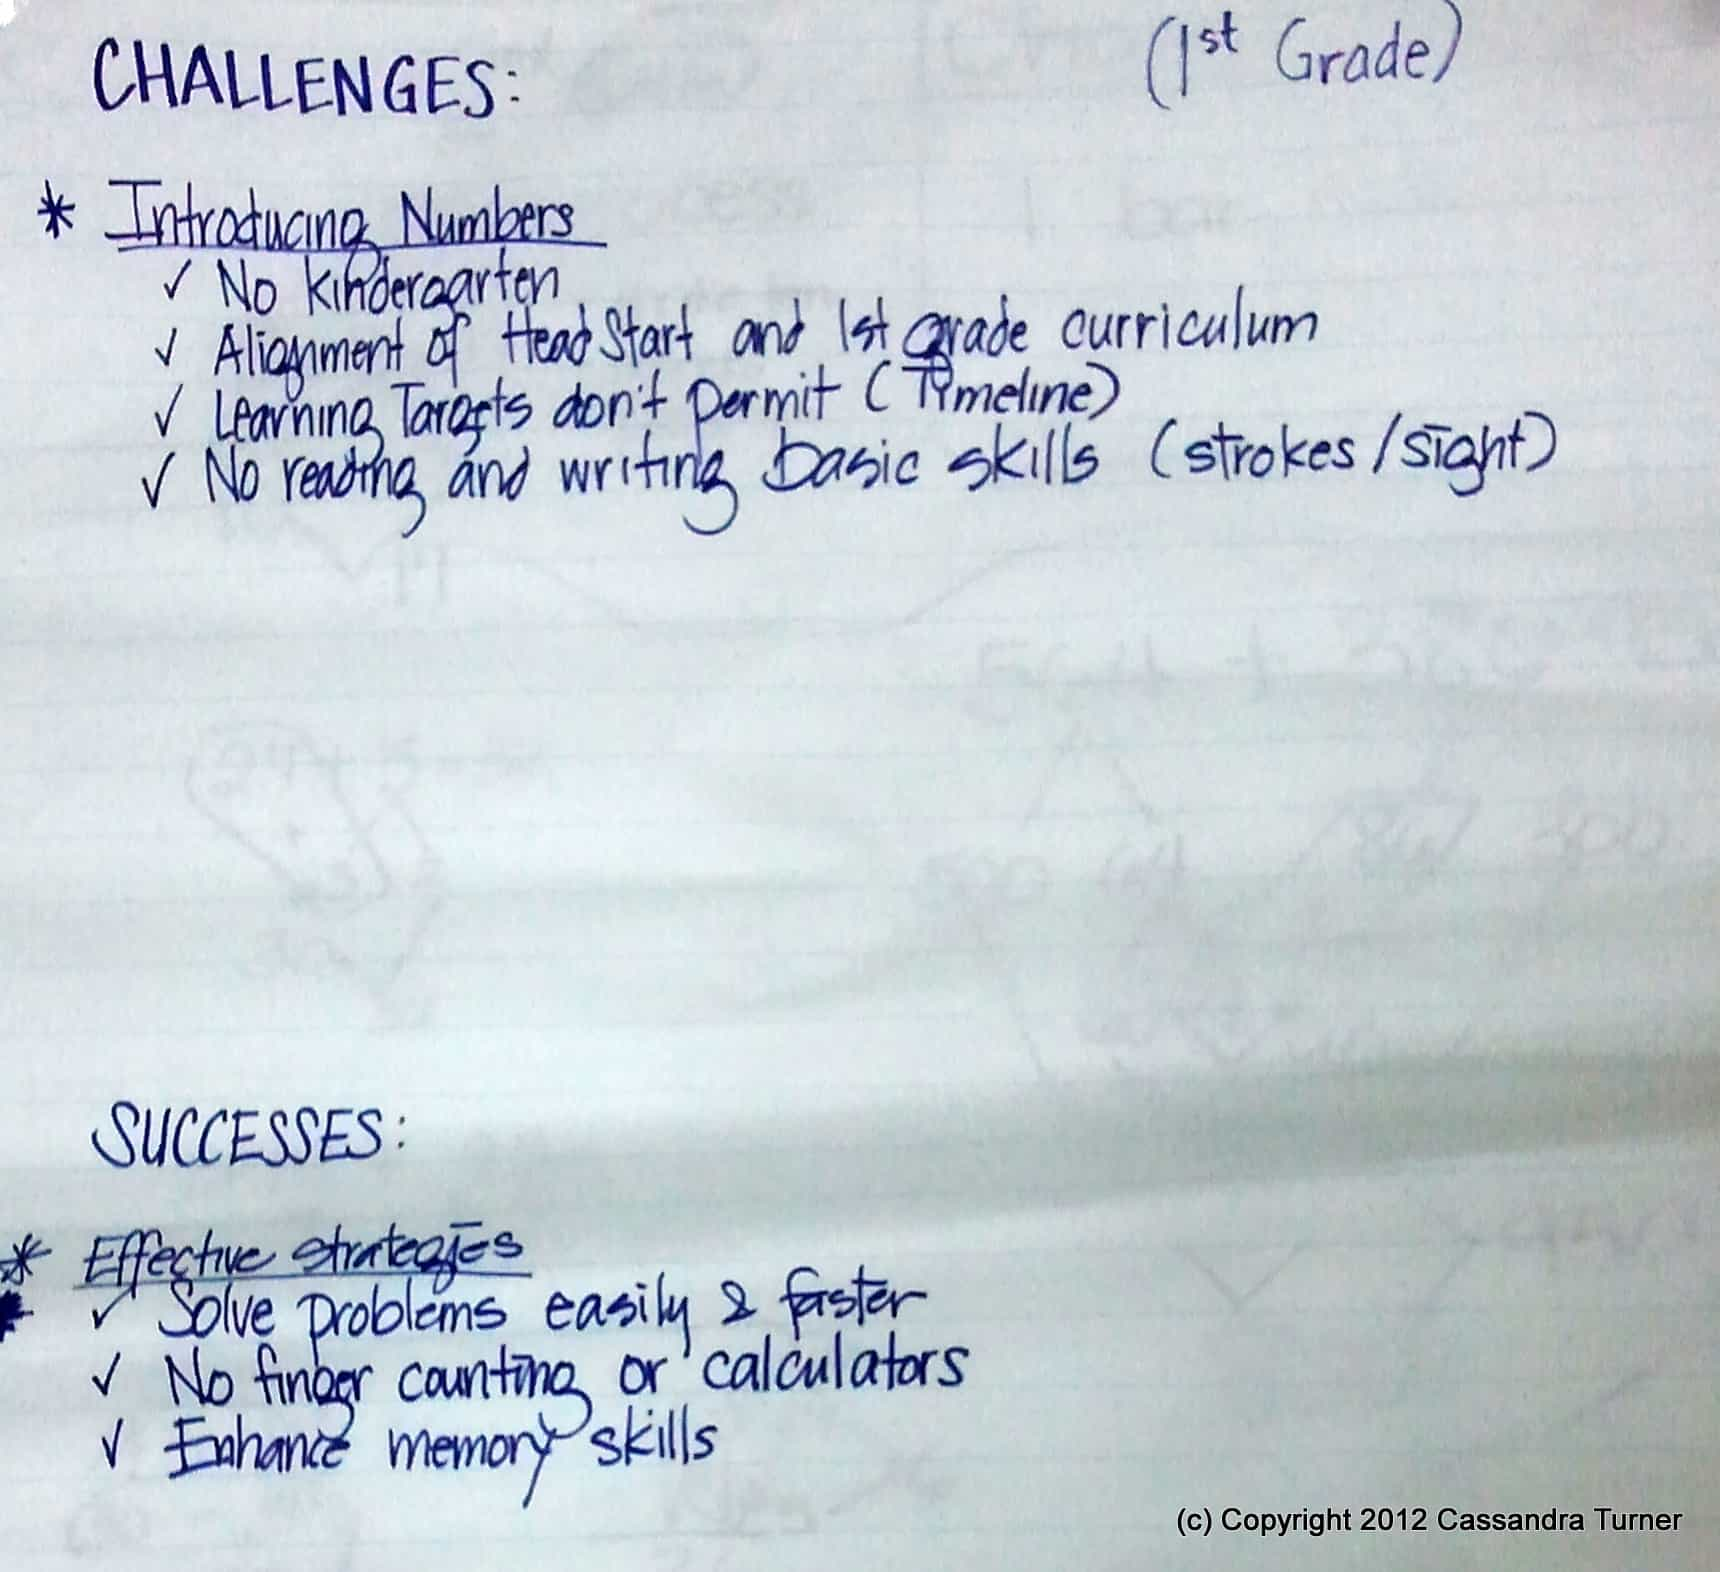 Adopting Singapore Math Challenges And Successes Singaporemathsource